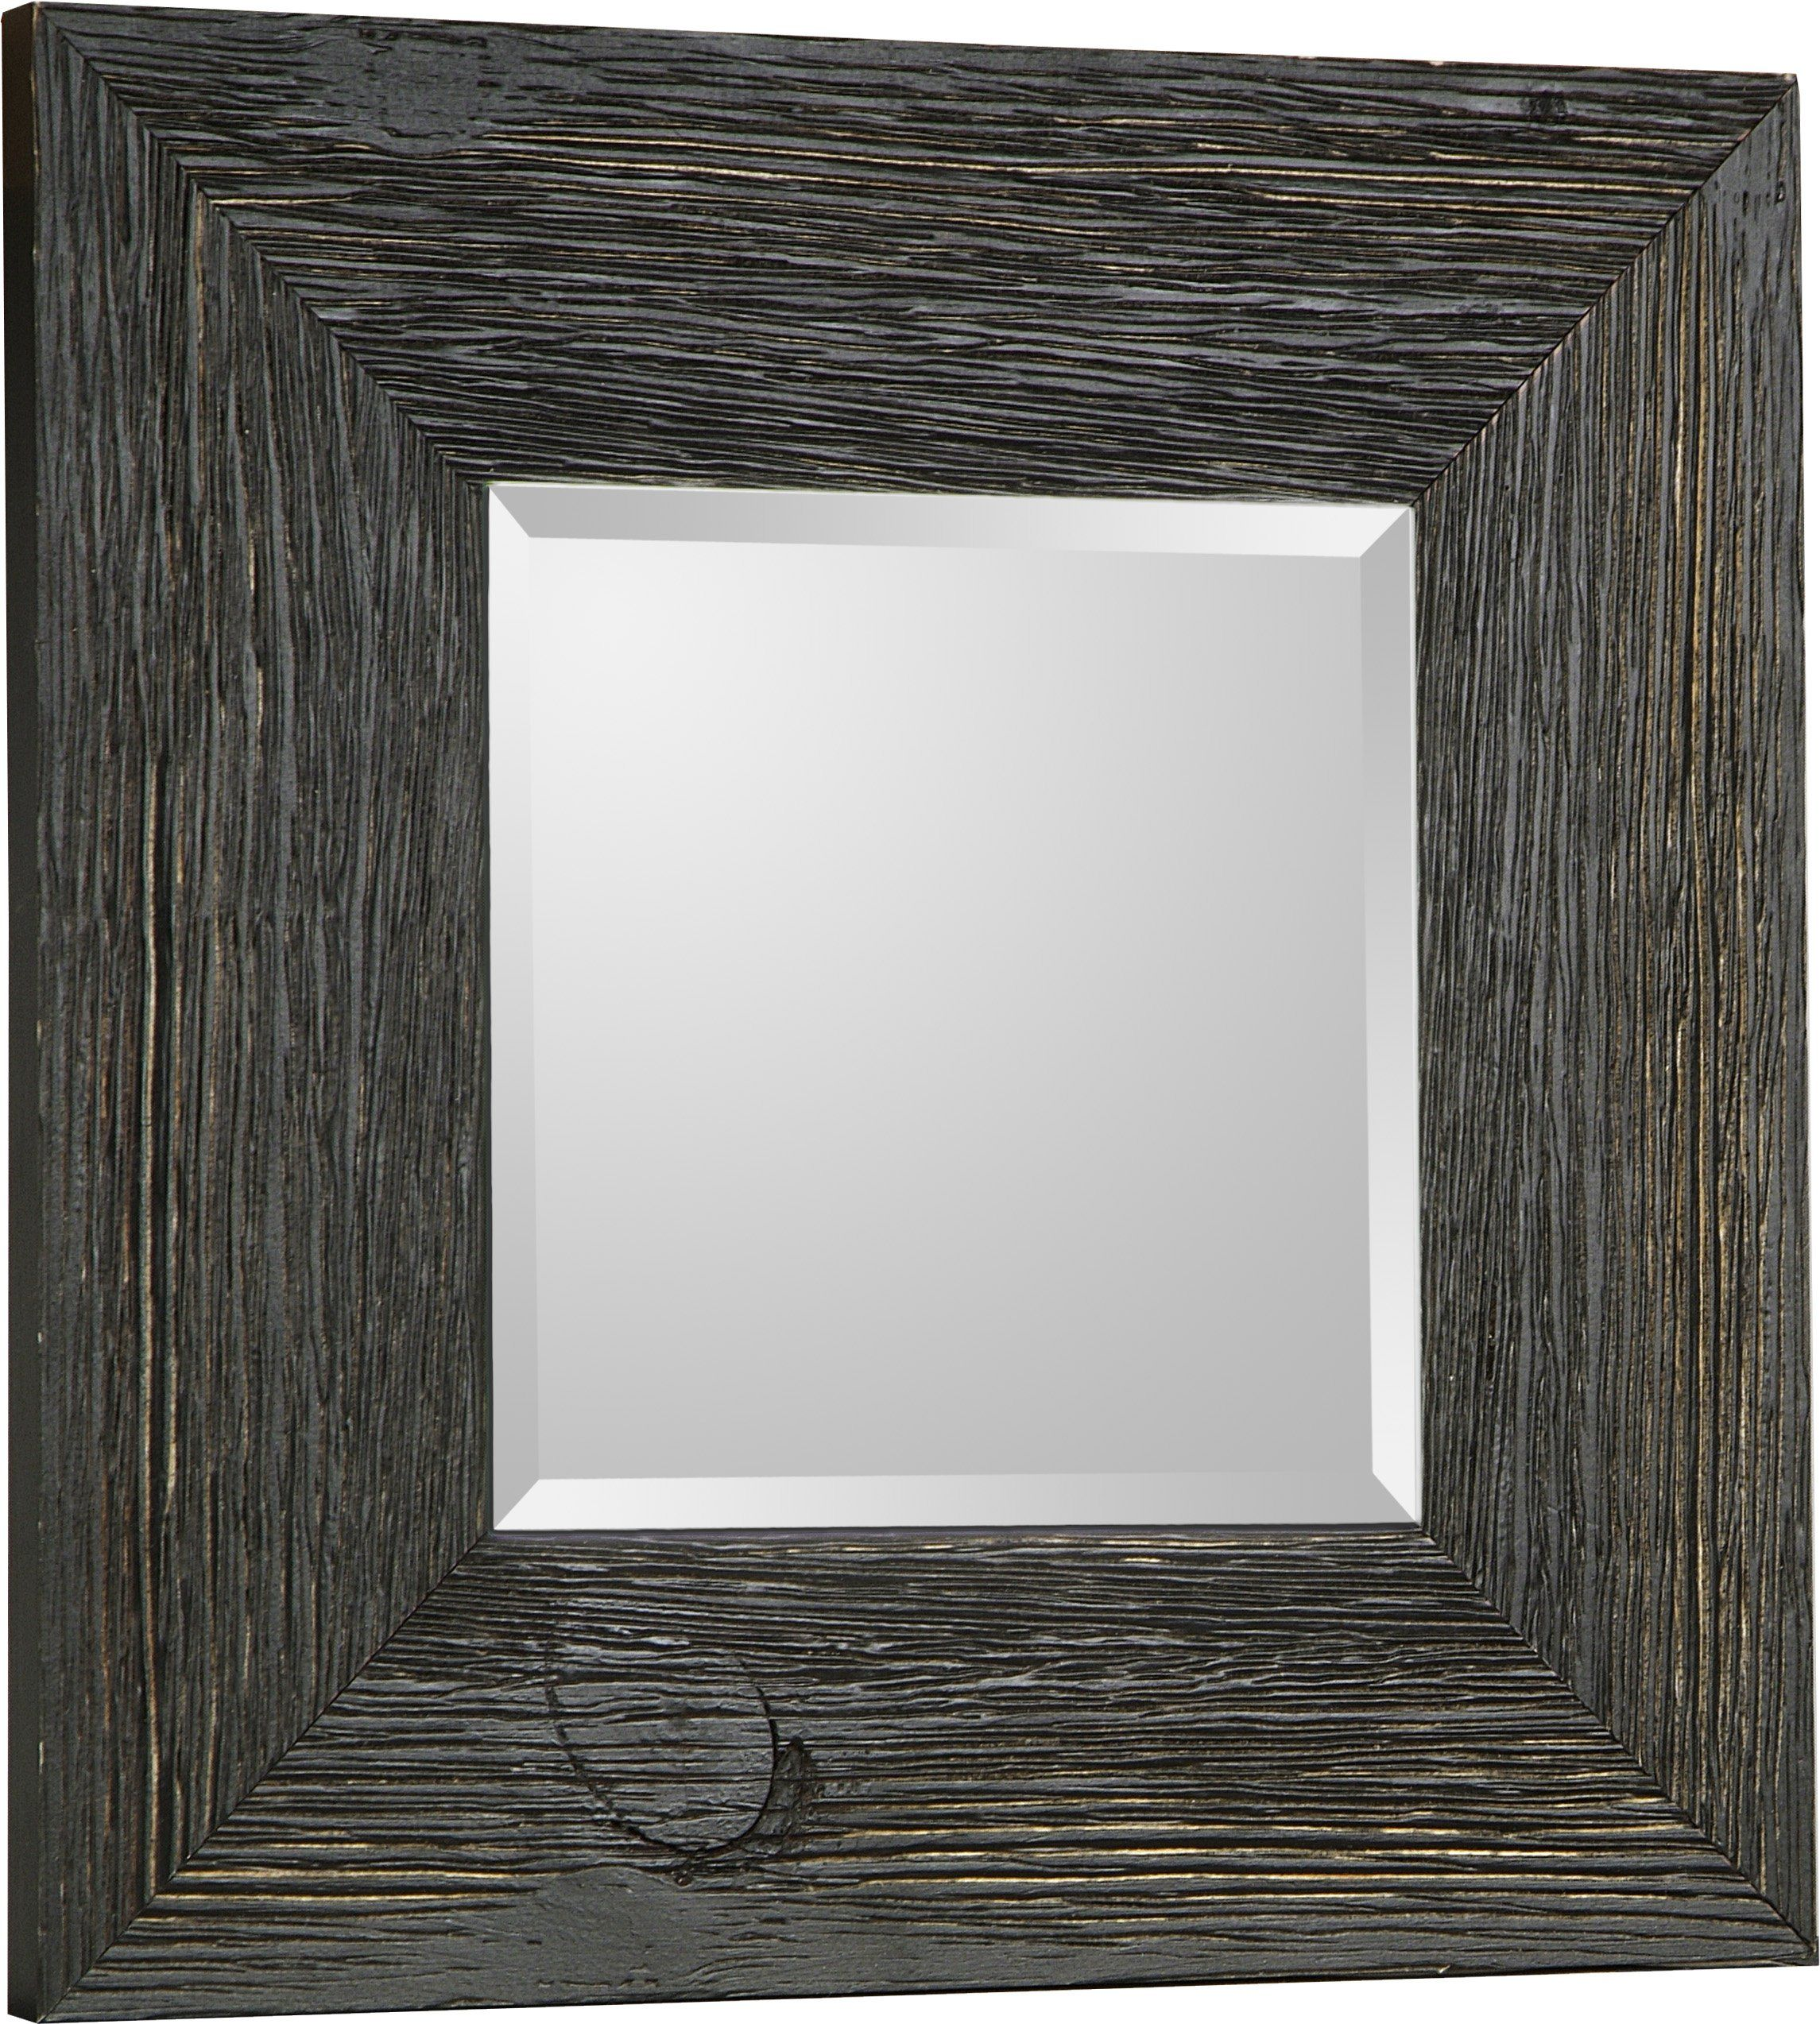 Hobbitholeco Square Beveled Accent Hanging Wall Decorative Mirror With Black